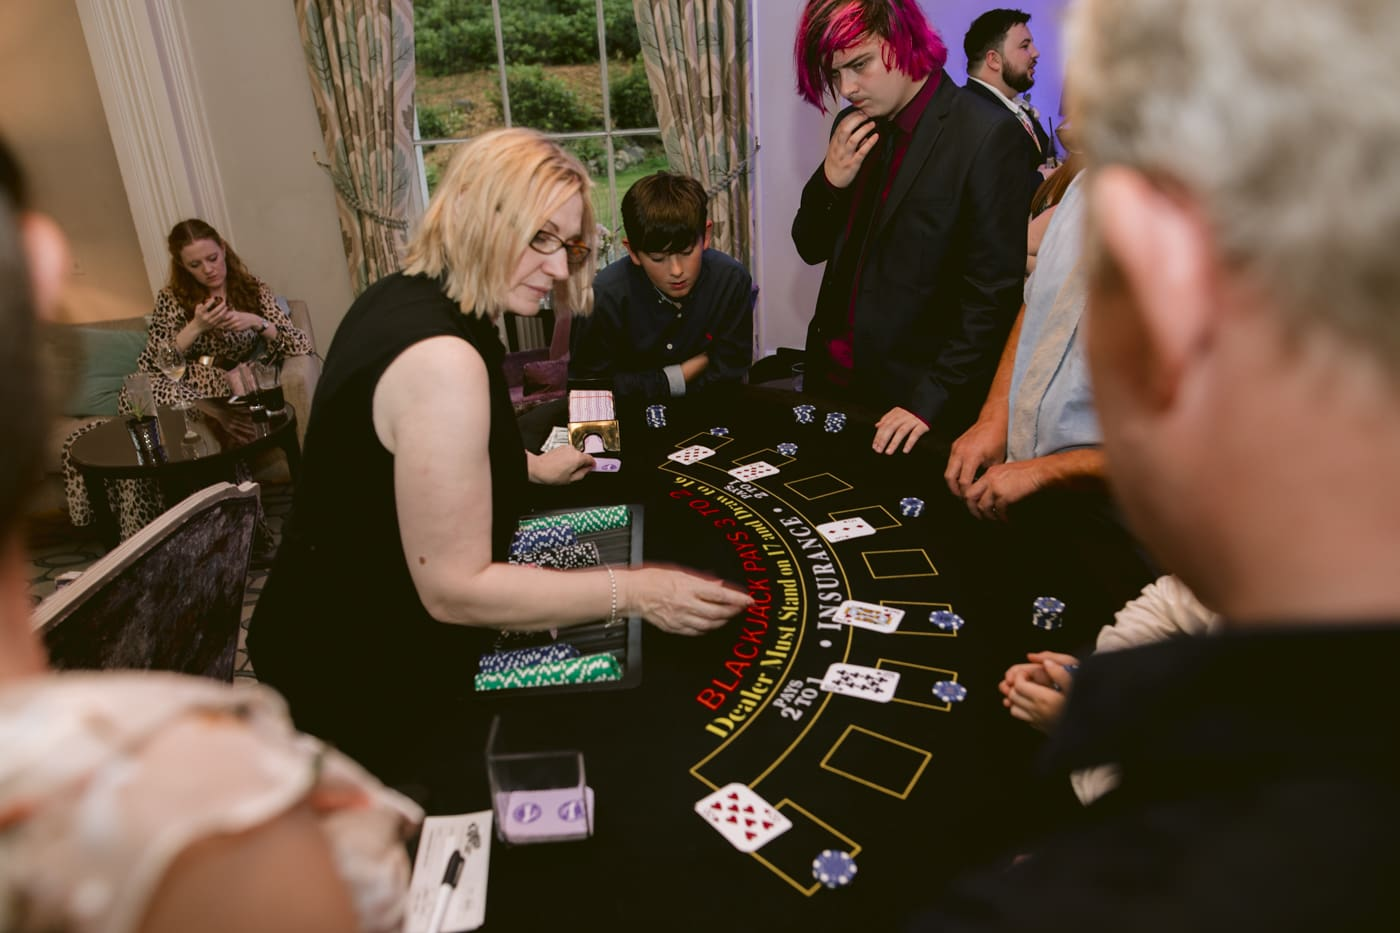 Dealer at Casino Table Dealing Cards for Guests at Storrs Hall Wedding